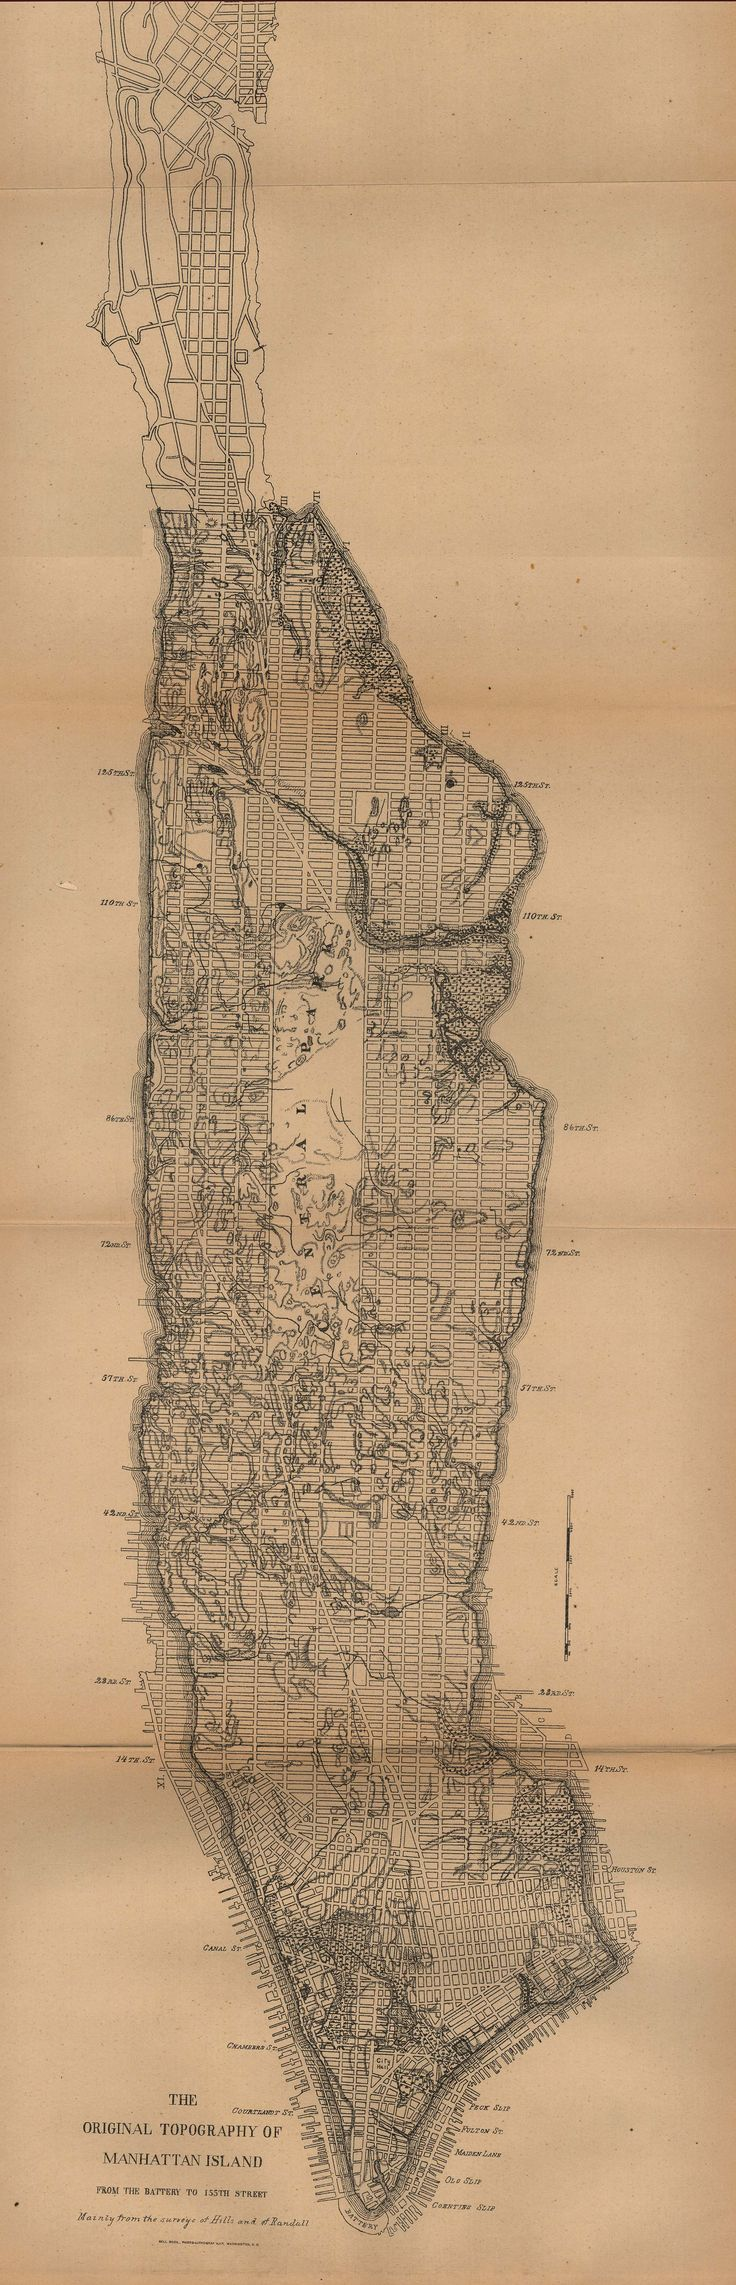 The Original Topography of Manhattan Island from the Battery to 155th Street…